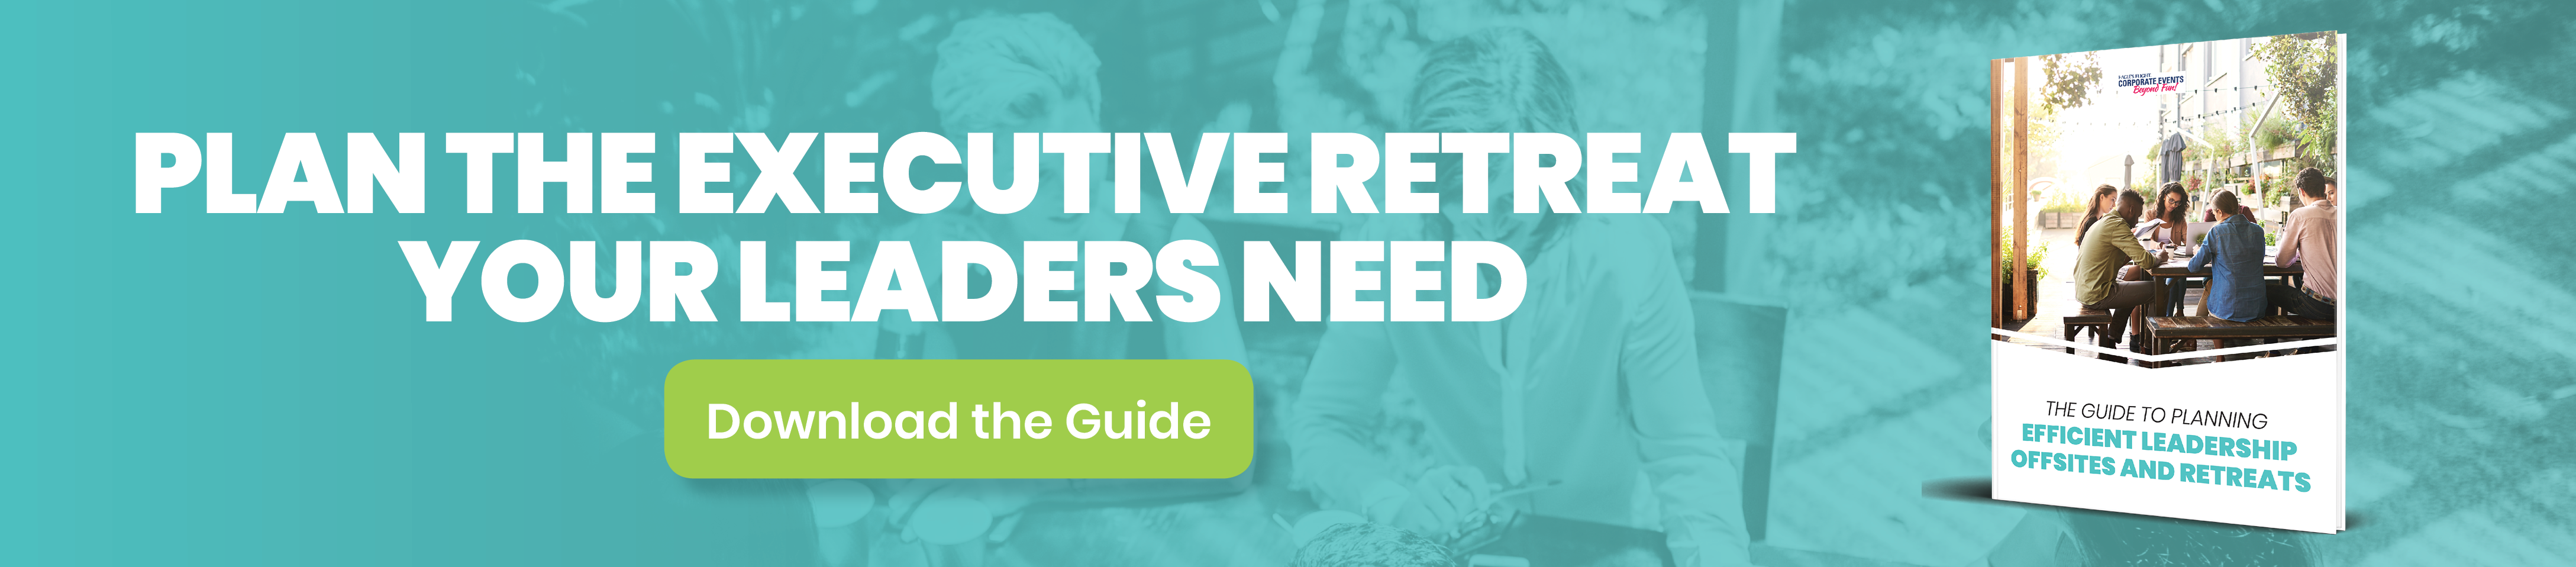 The Guide to Planning Efficient Leadership Offsites and Retreats